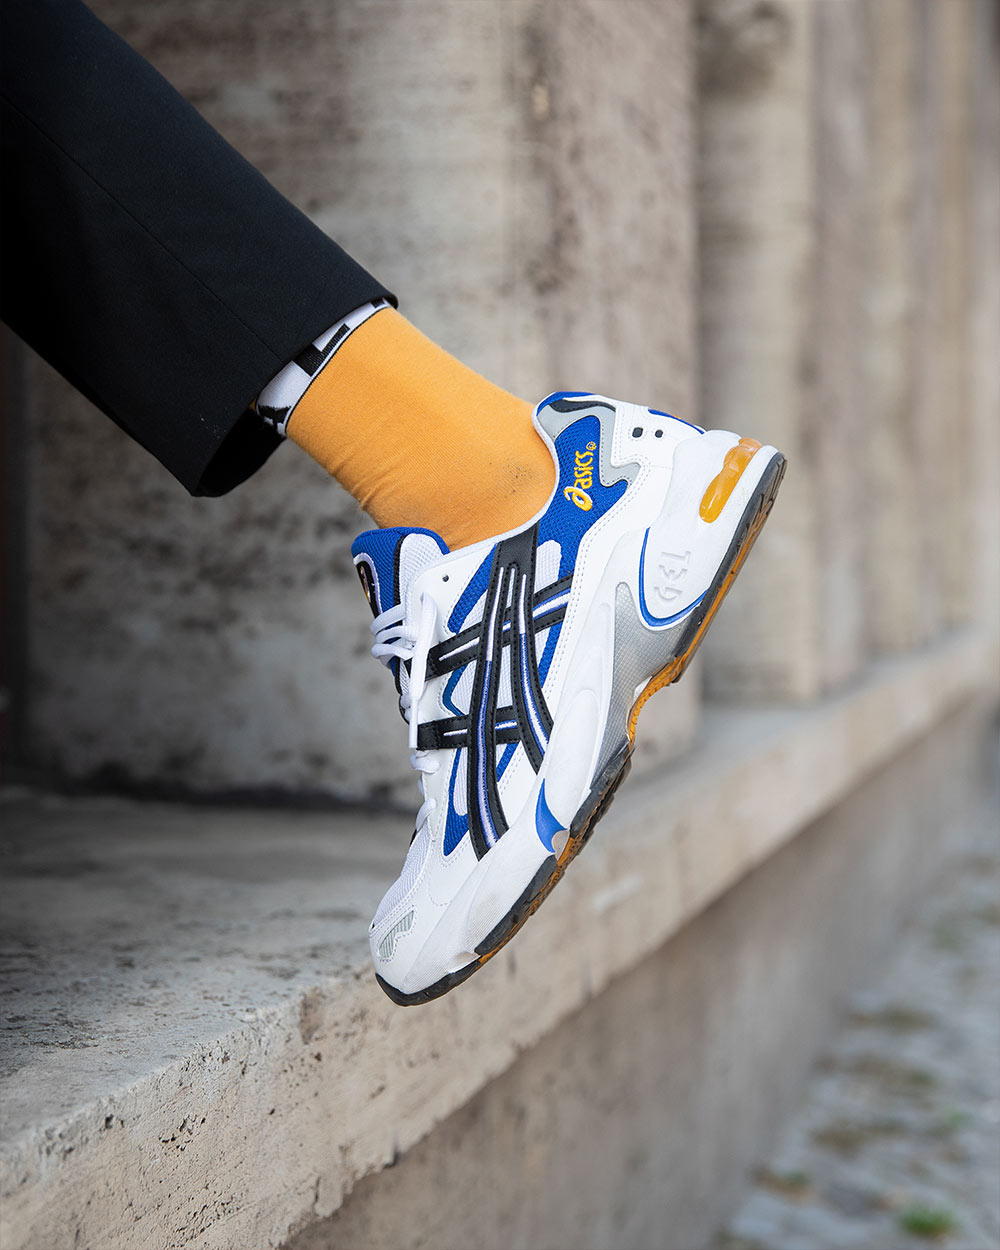 ASICS Drops a Bold New Colorway of the GEL KAYANO 5 360